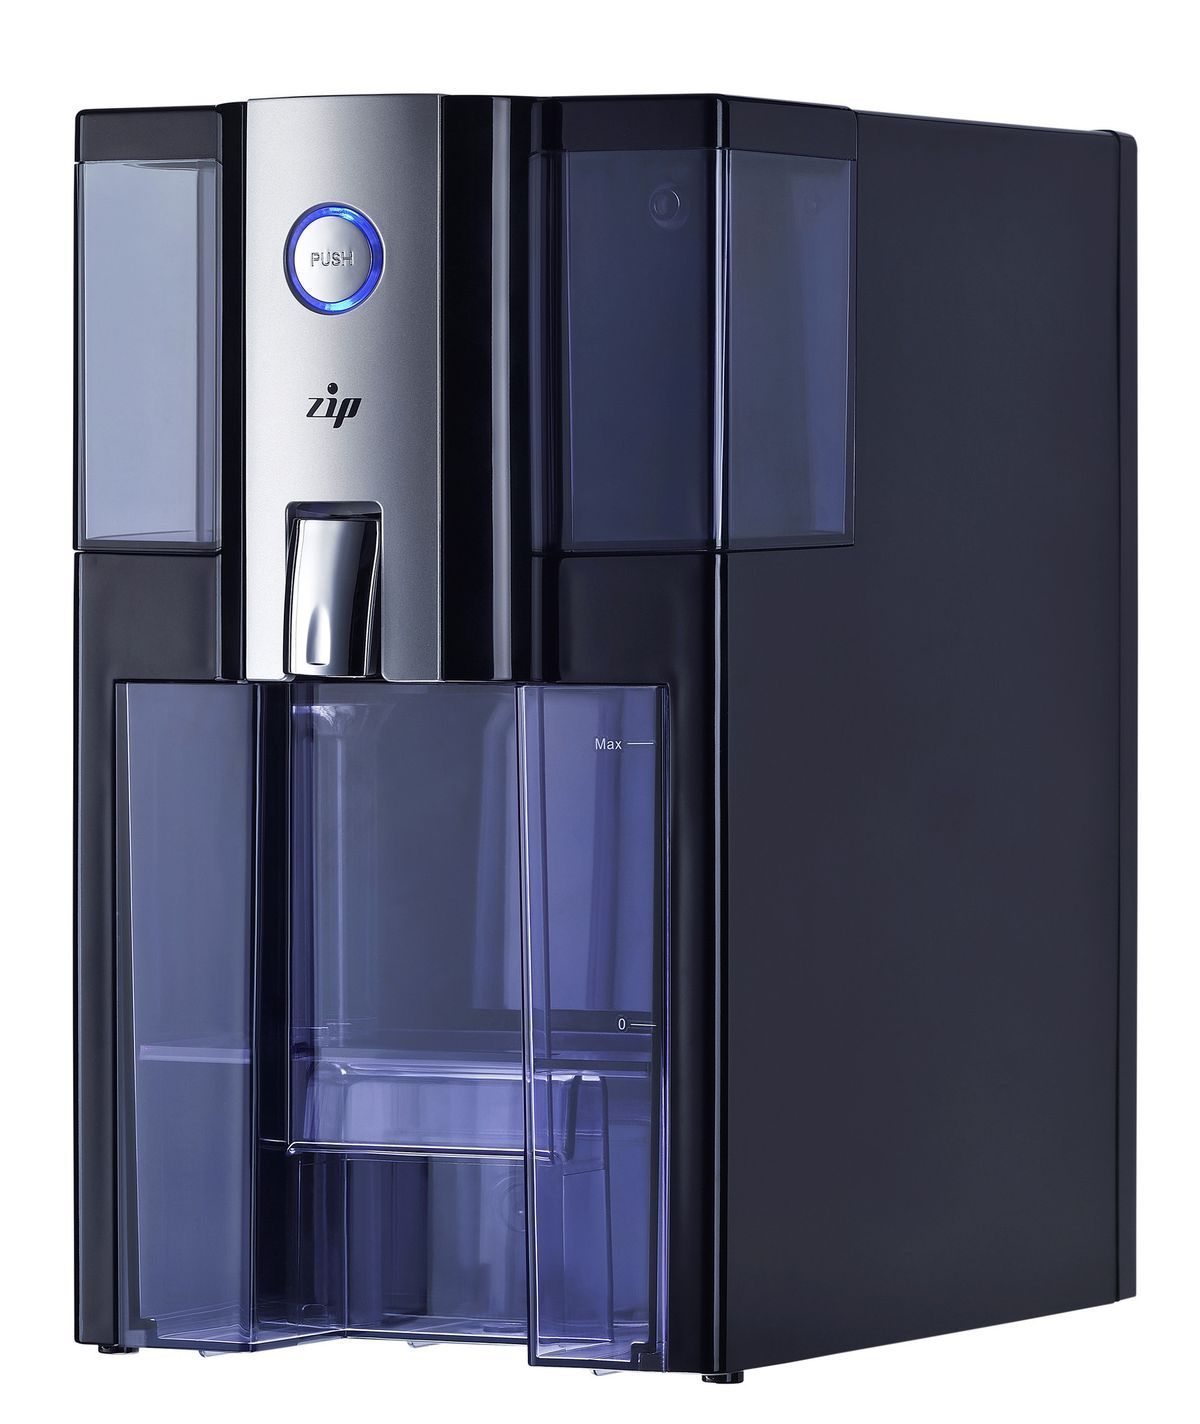 Puricom Zip Countertop Reverse Osmosis Water Filtration System